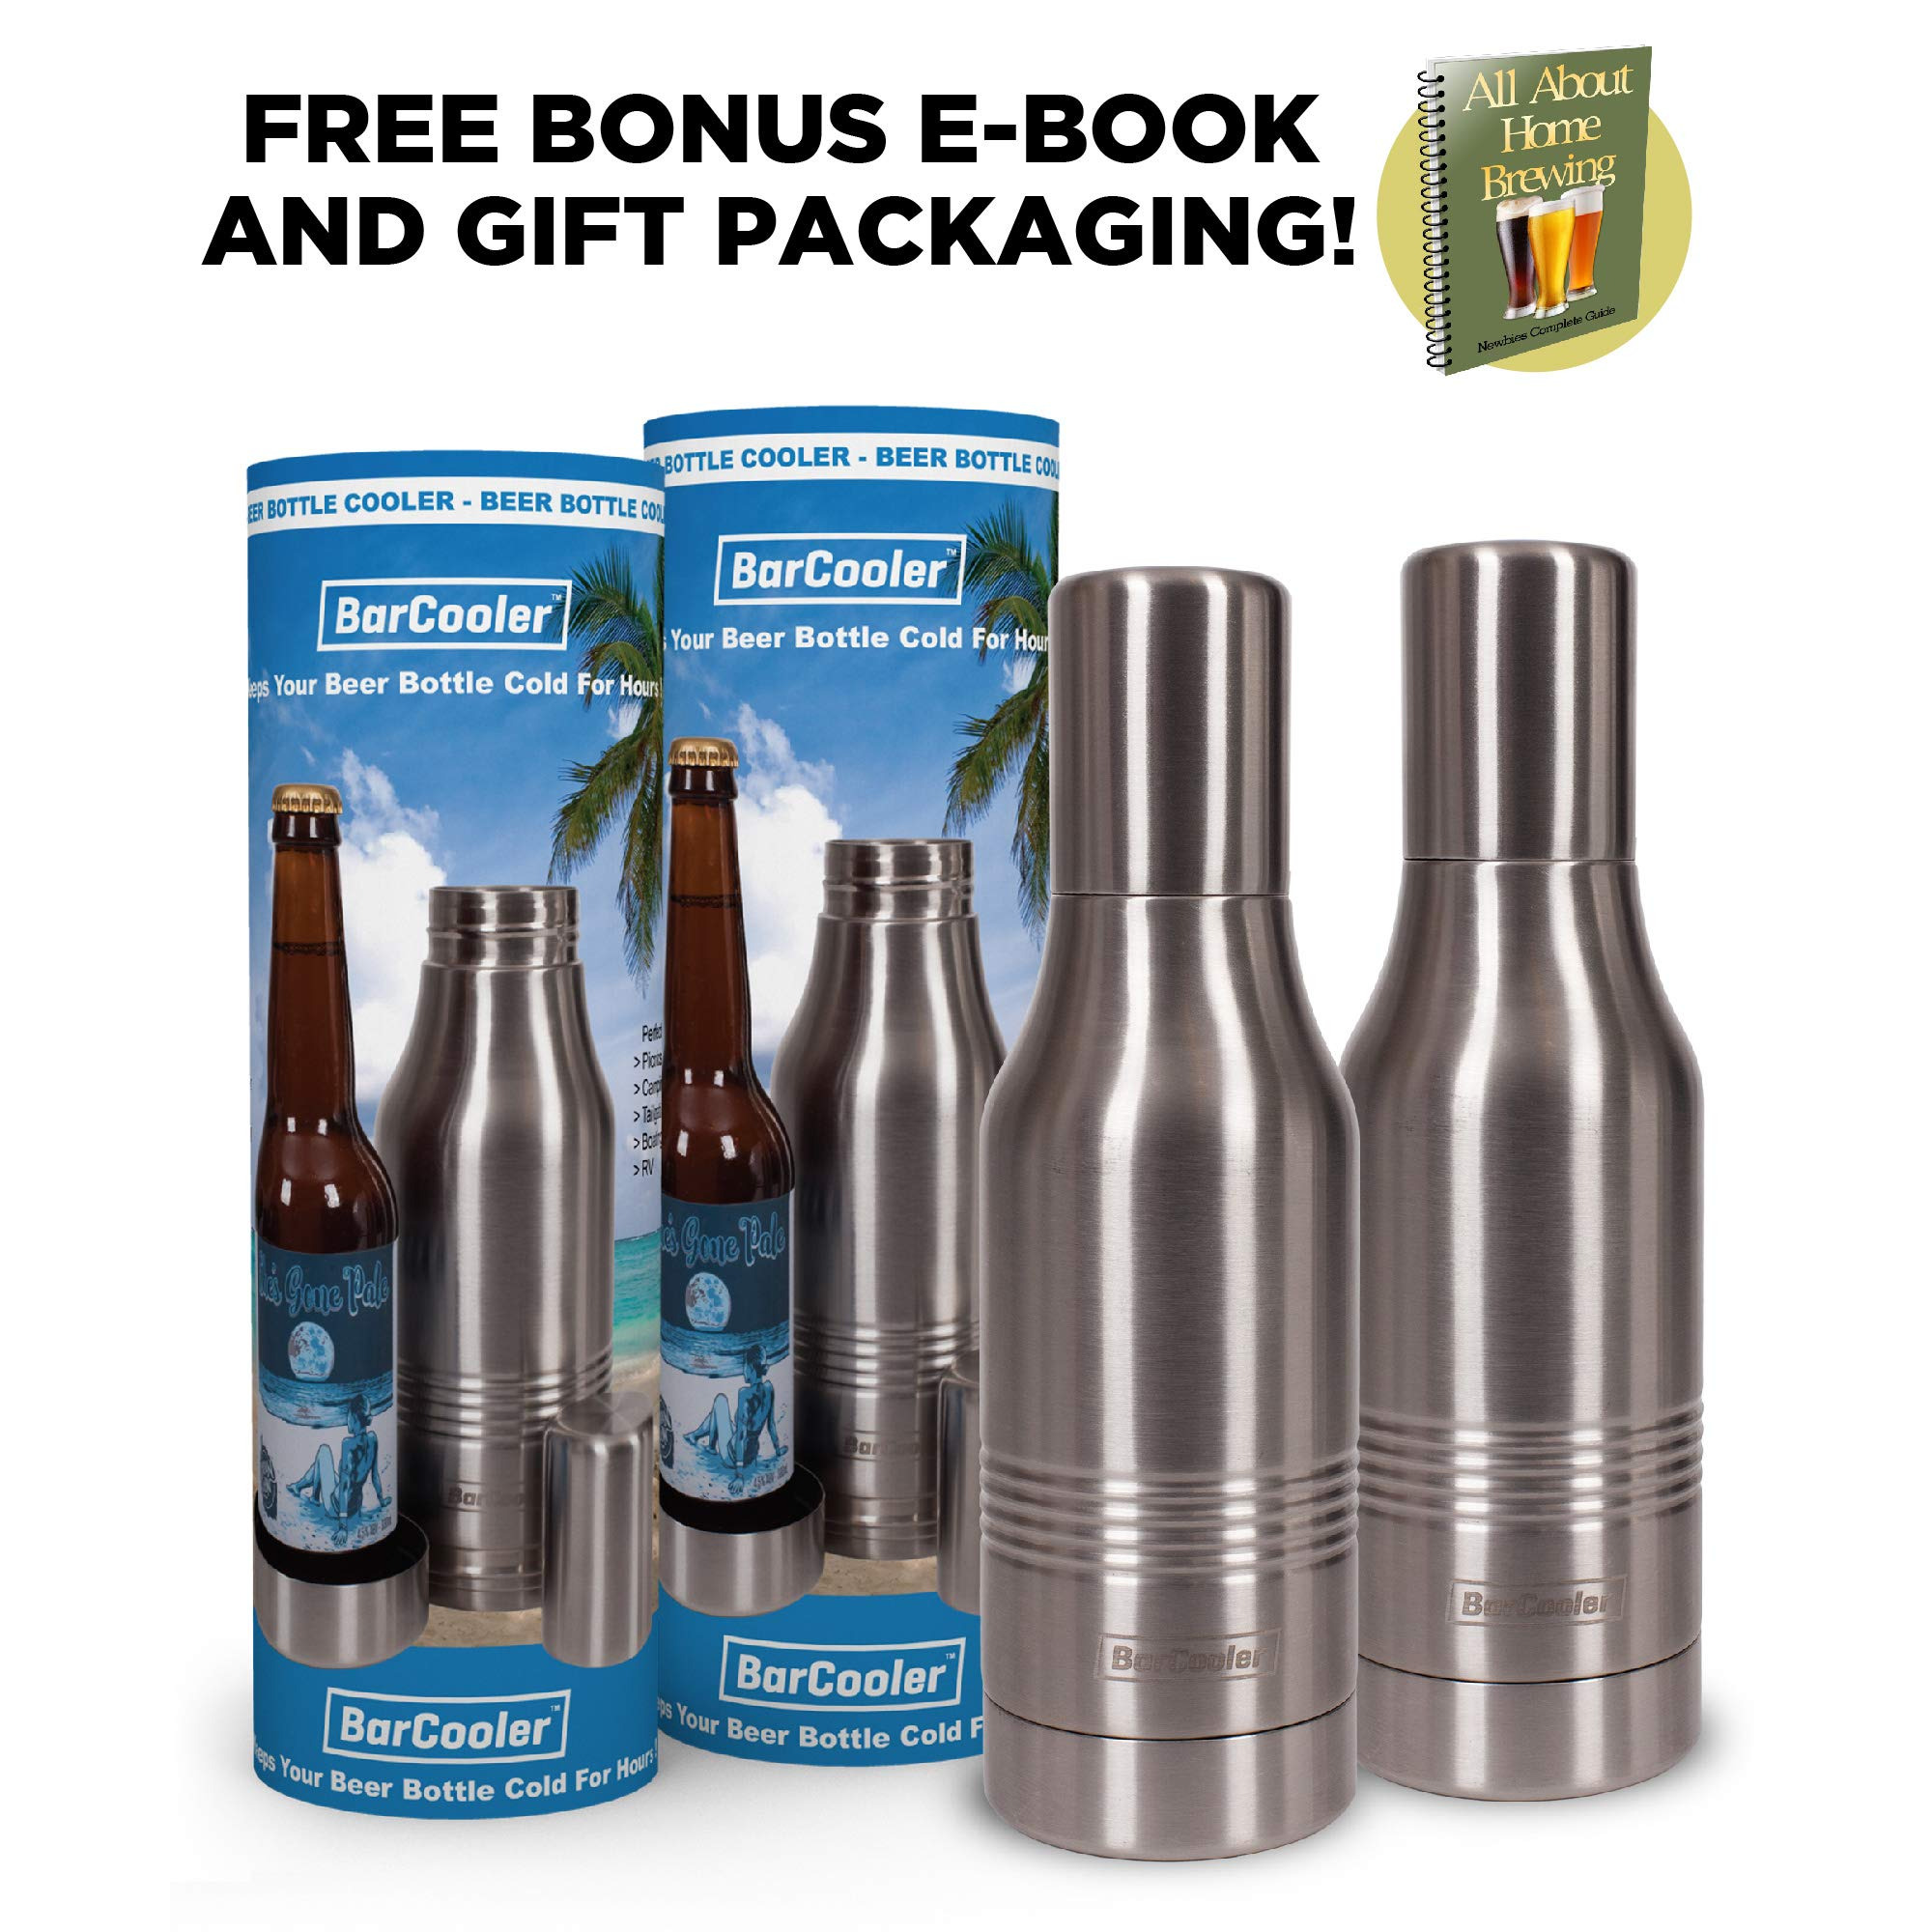 Beer Bottle Cooler - Double Wall Stainless Steel Beer Holder Keeps Your Beer Colder. Great Fathers Day Gift for Beer Lovers ! Fits 12oz Beer Bottles. Includes BONUS E-Book + Gift Box. Twin Pack by BarCooler